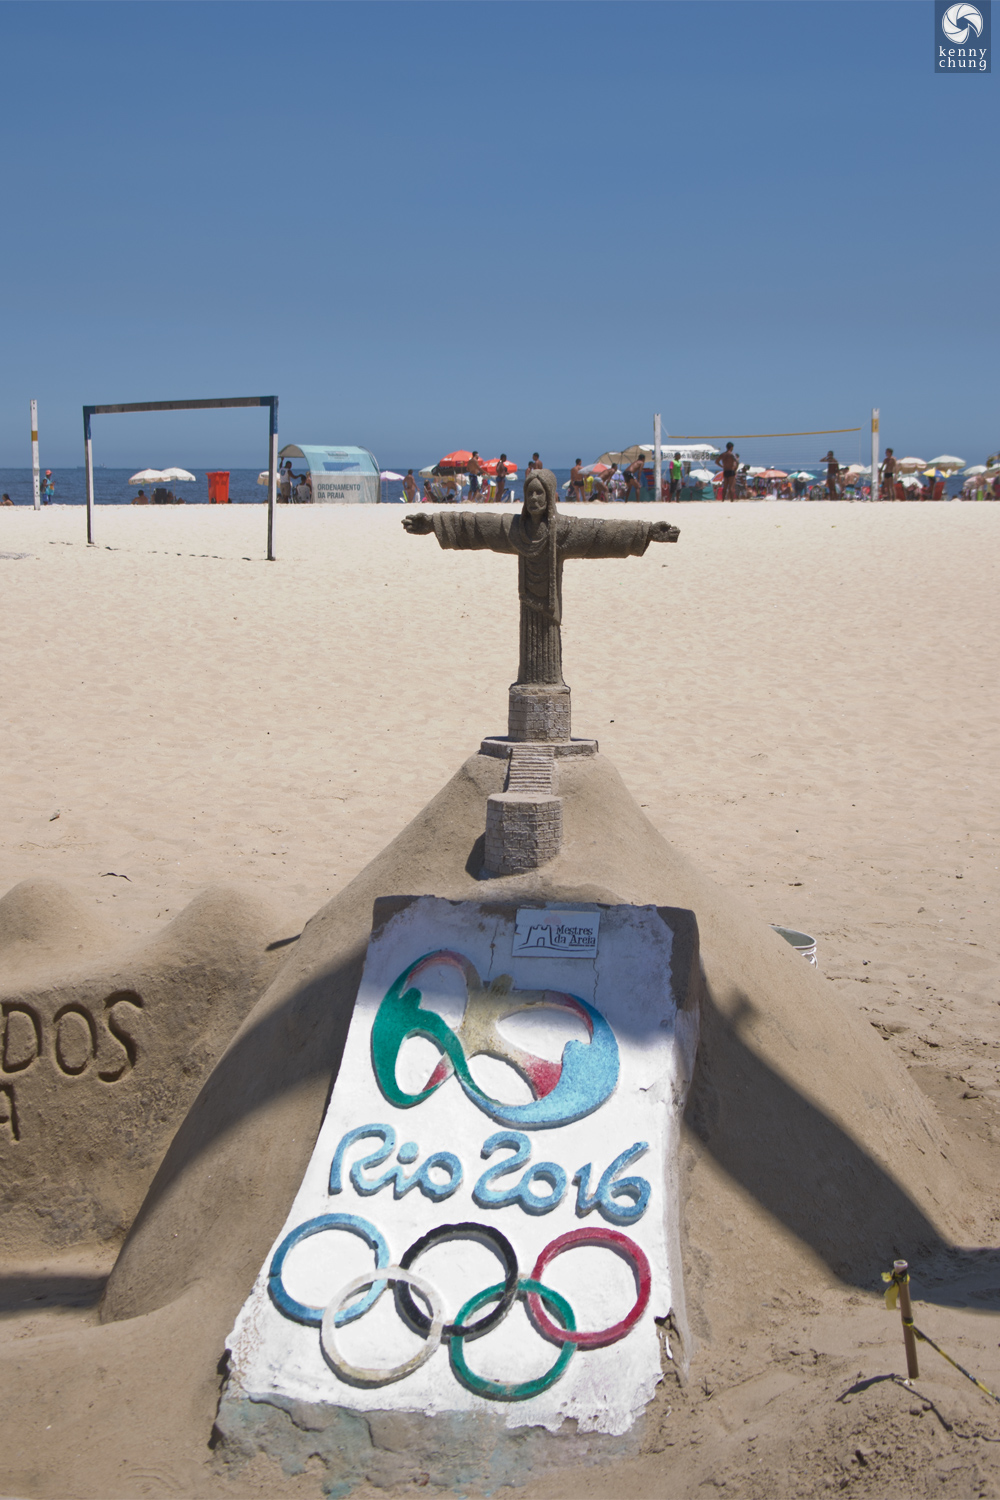 Cristo Redentor sand sculpture for Rio 2016 Olympics